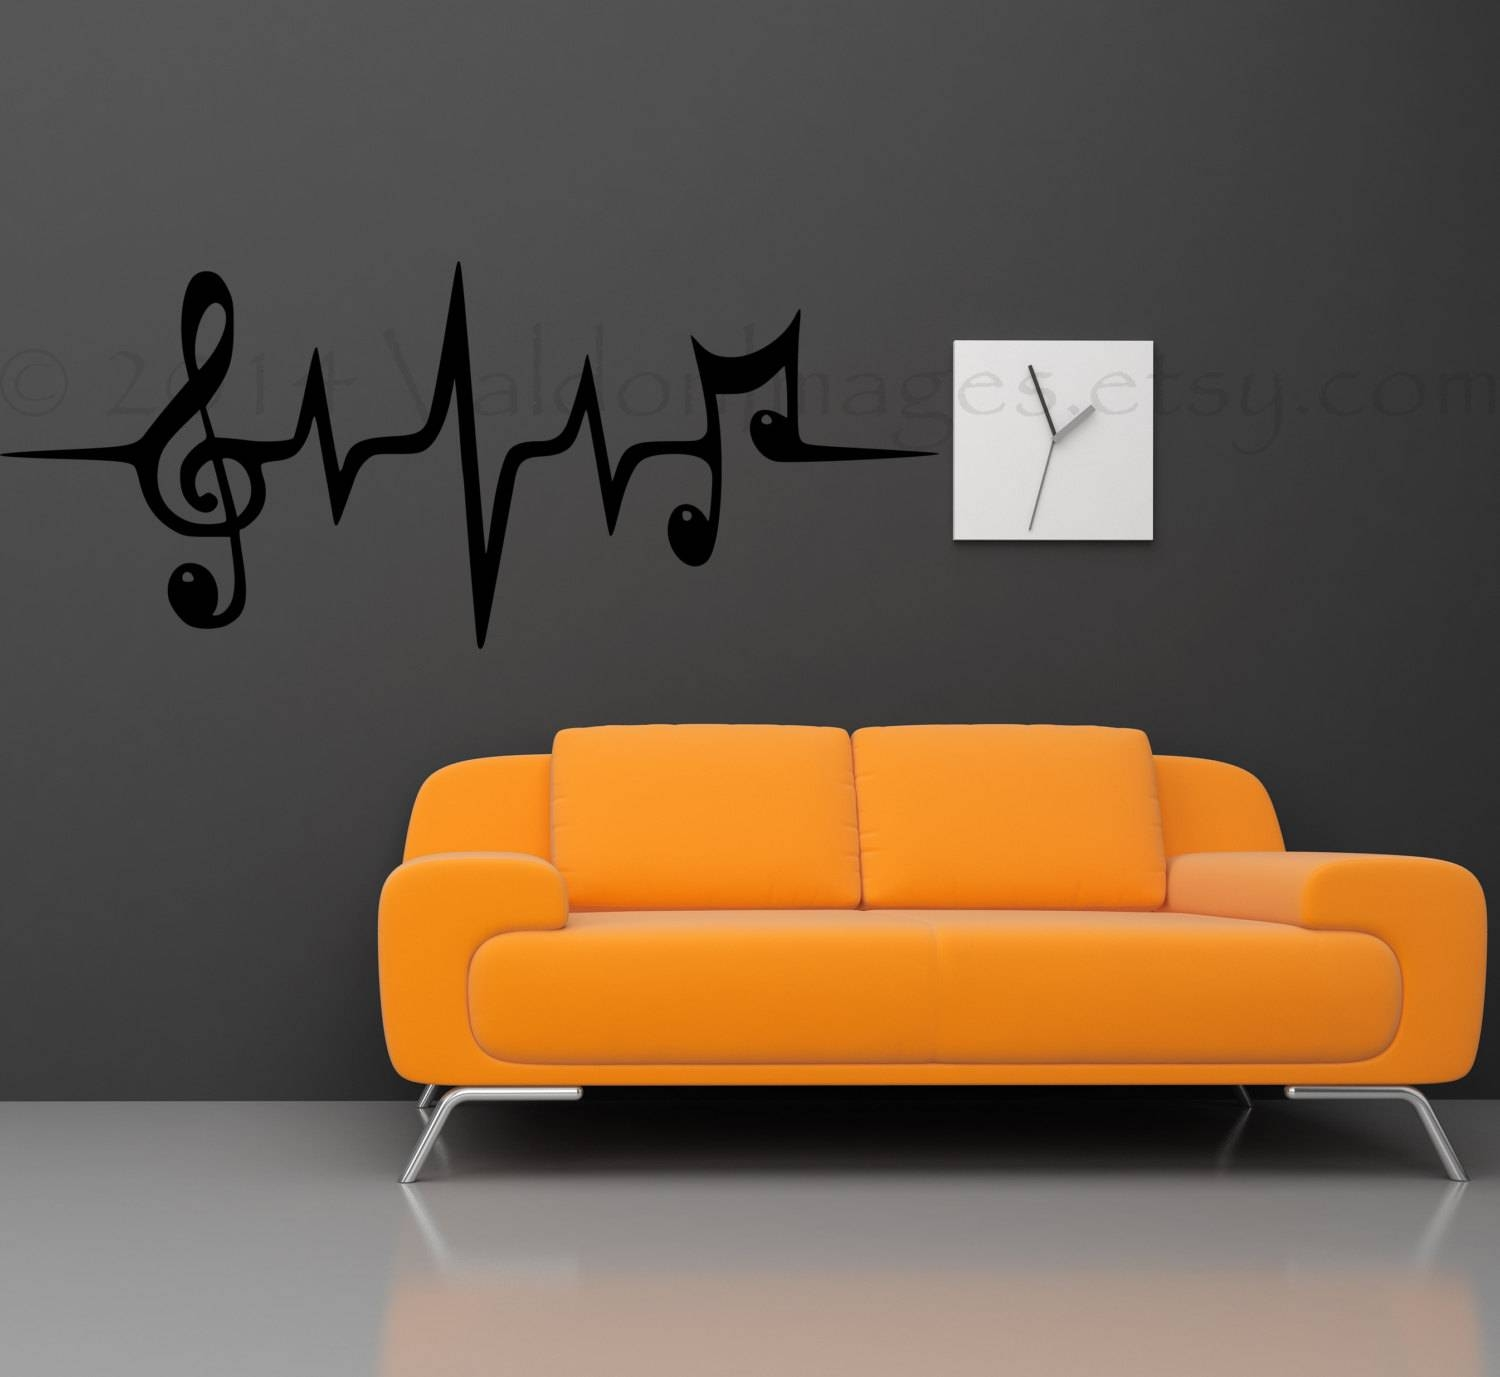 Music Note Wall Decal Music Wall Decal Heartbeat Wall Inside 2017 Music Note Art For Walls (View 11 of 25)